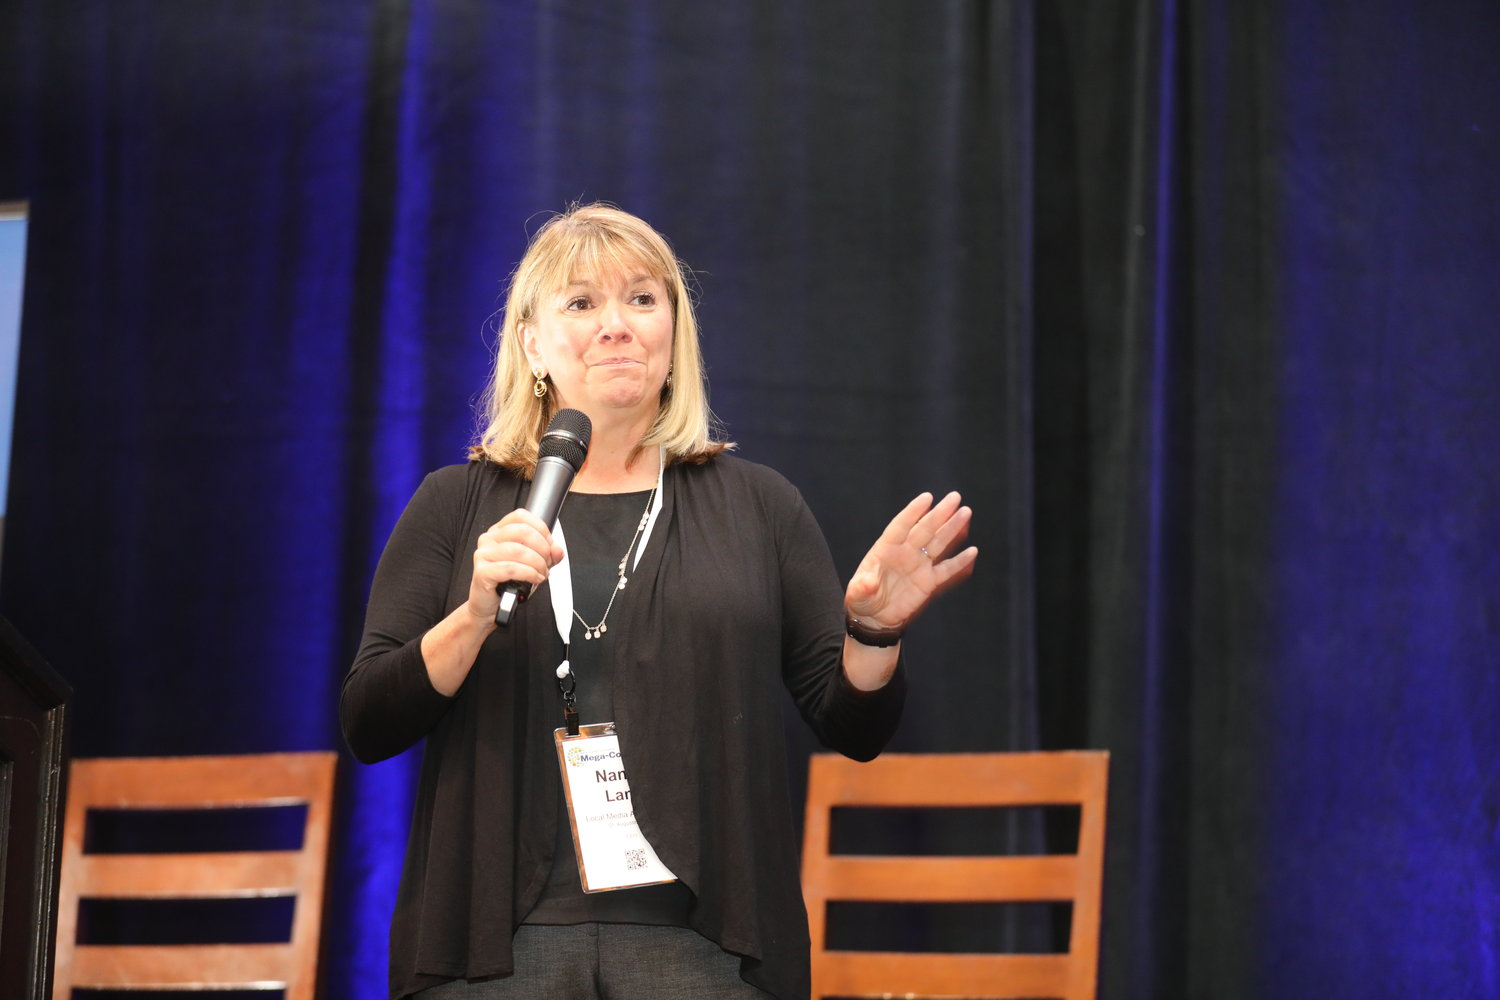 Nancy Lane, CEO of Local Media Association, at the 2020 Mega-Conference. (Photo by Bob Booth)